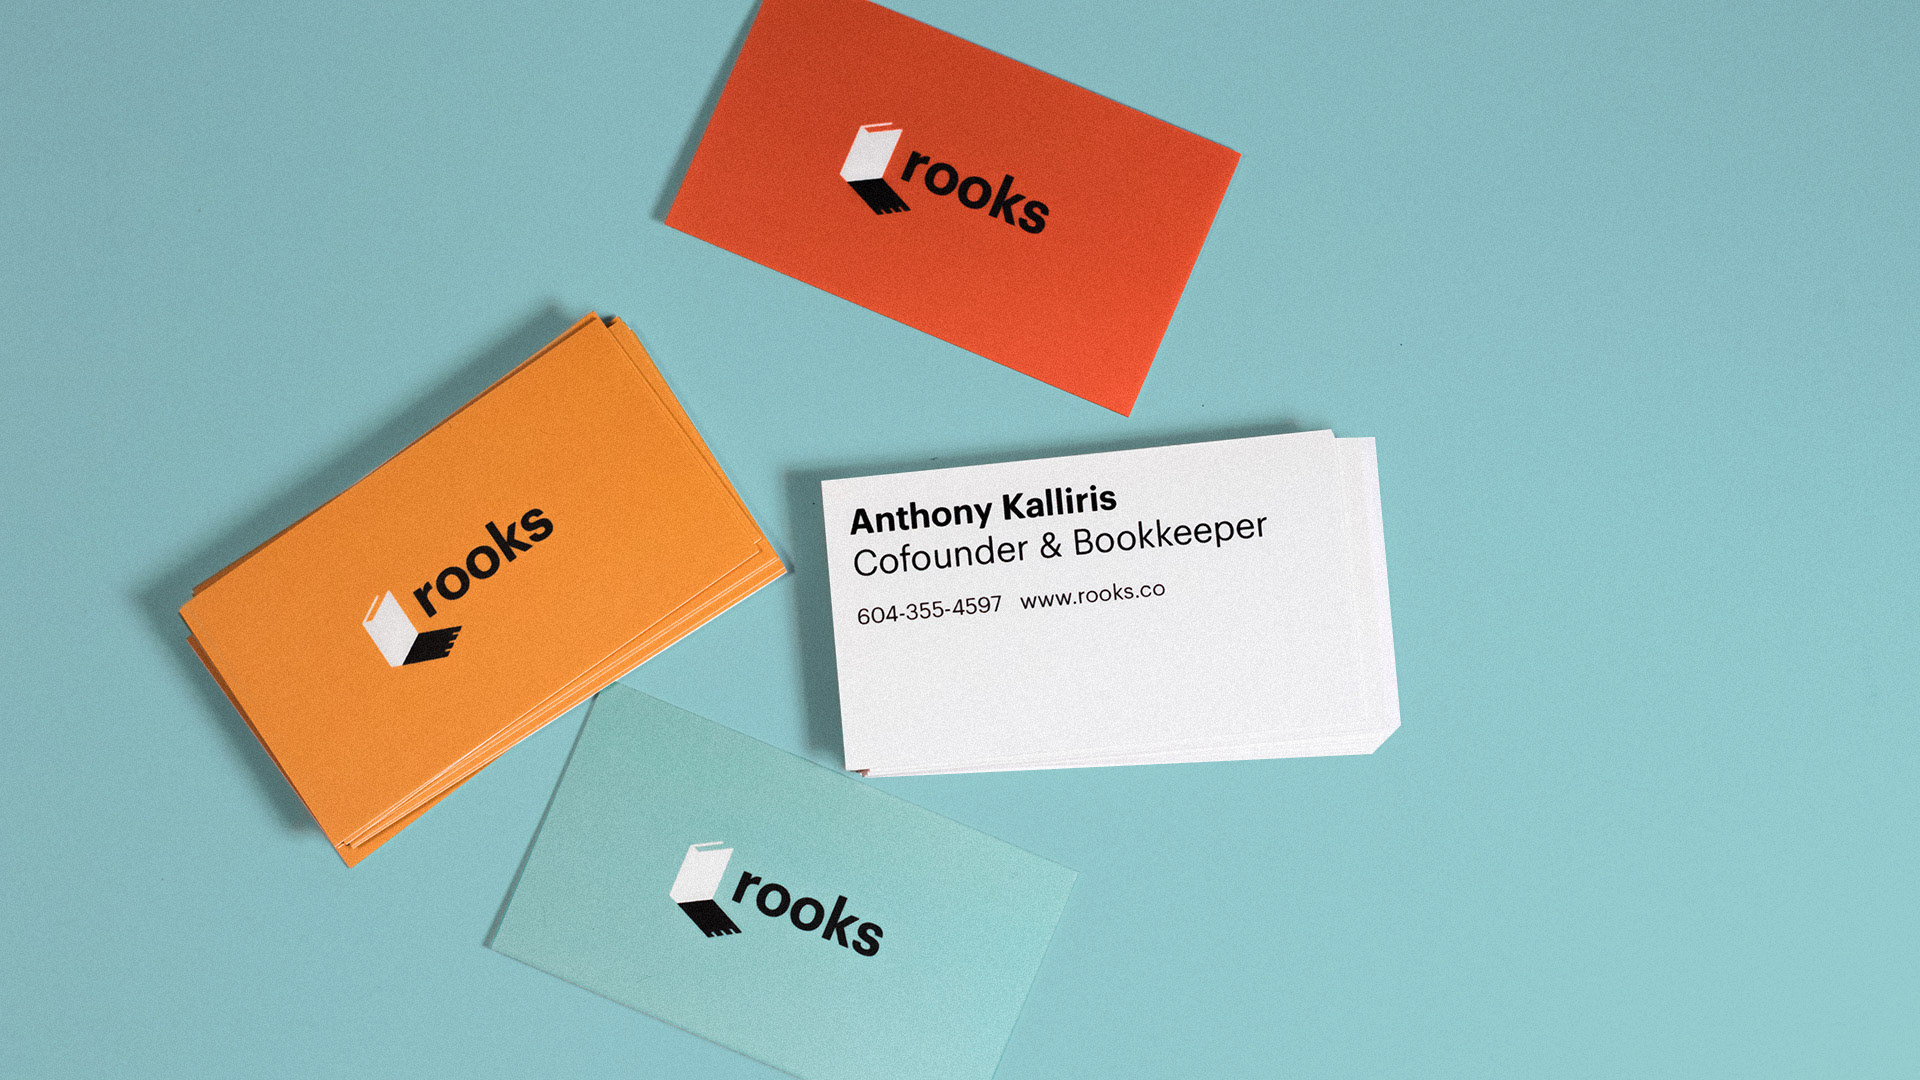 Rooks Bookkeeping business cards